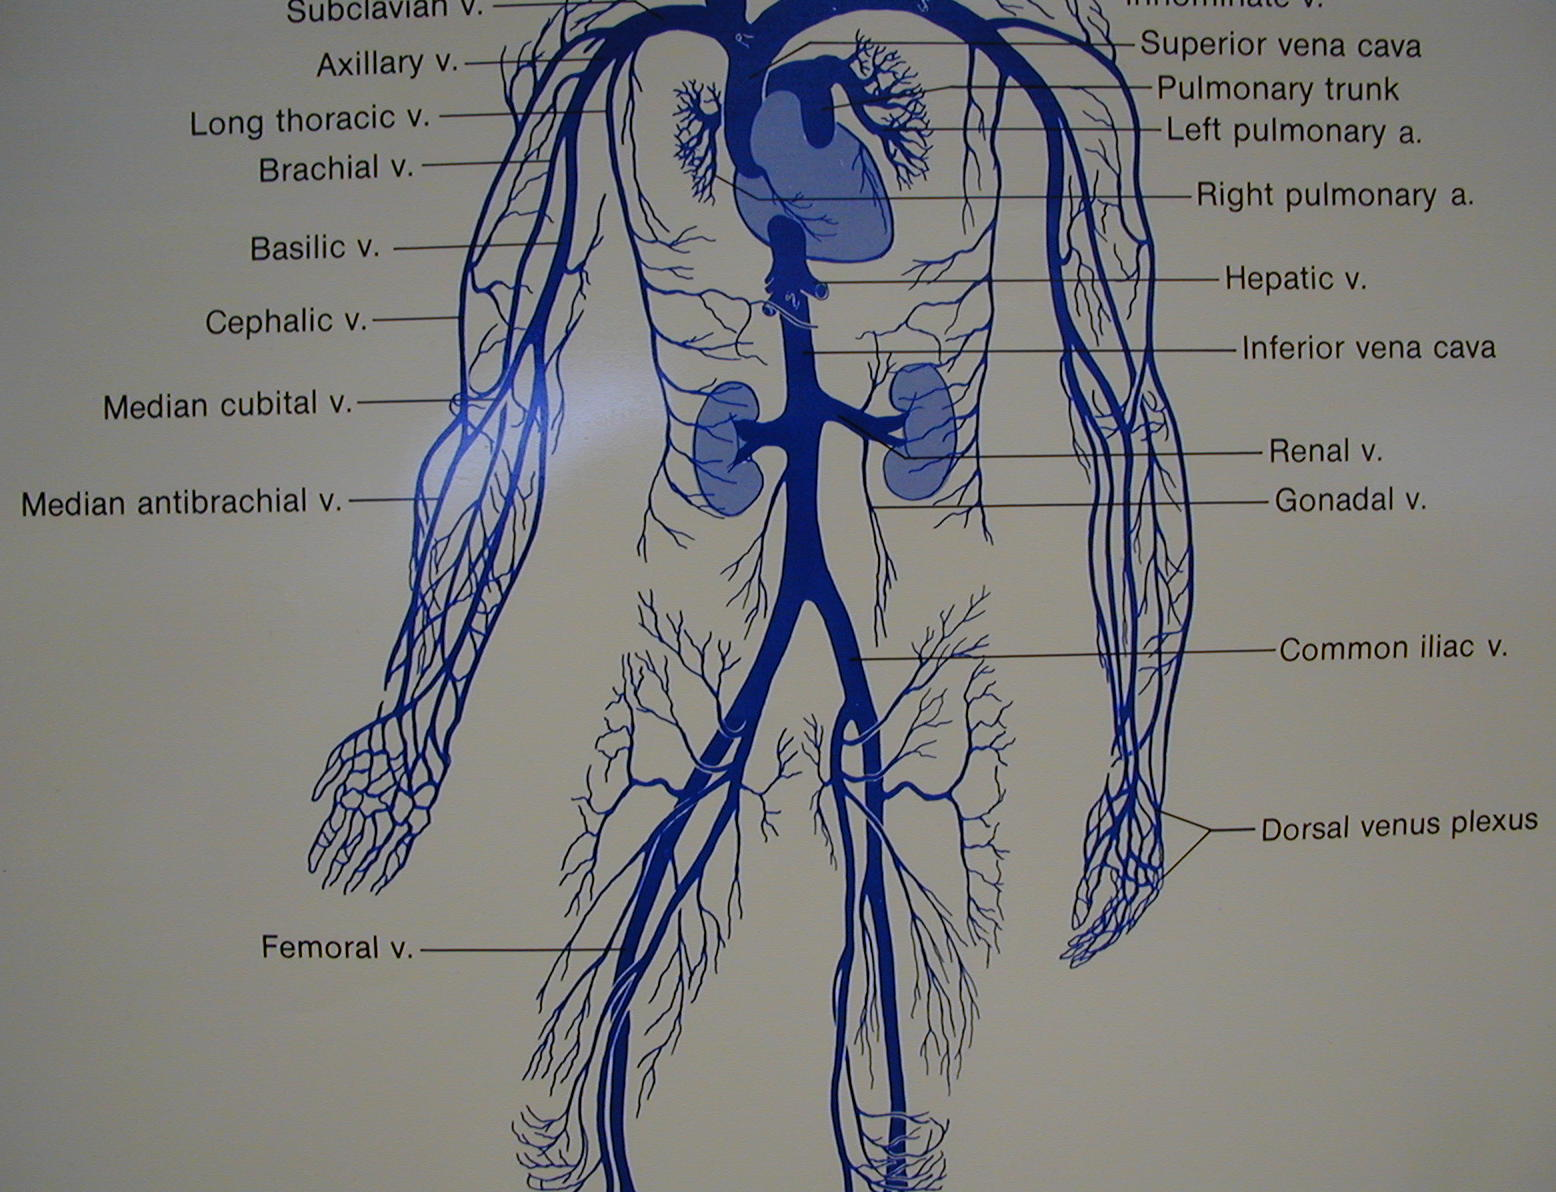 hight resolution of diagram of artery throughout body